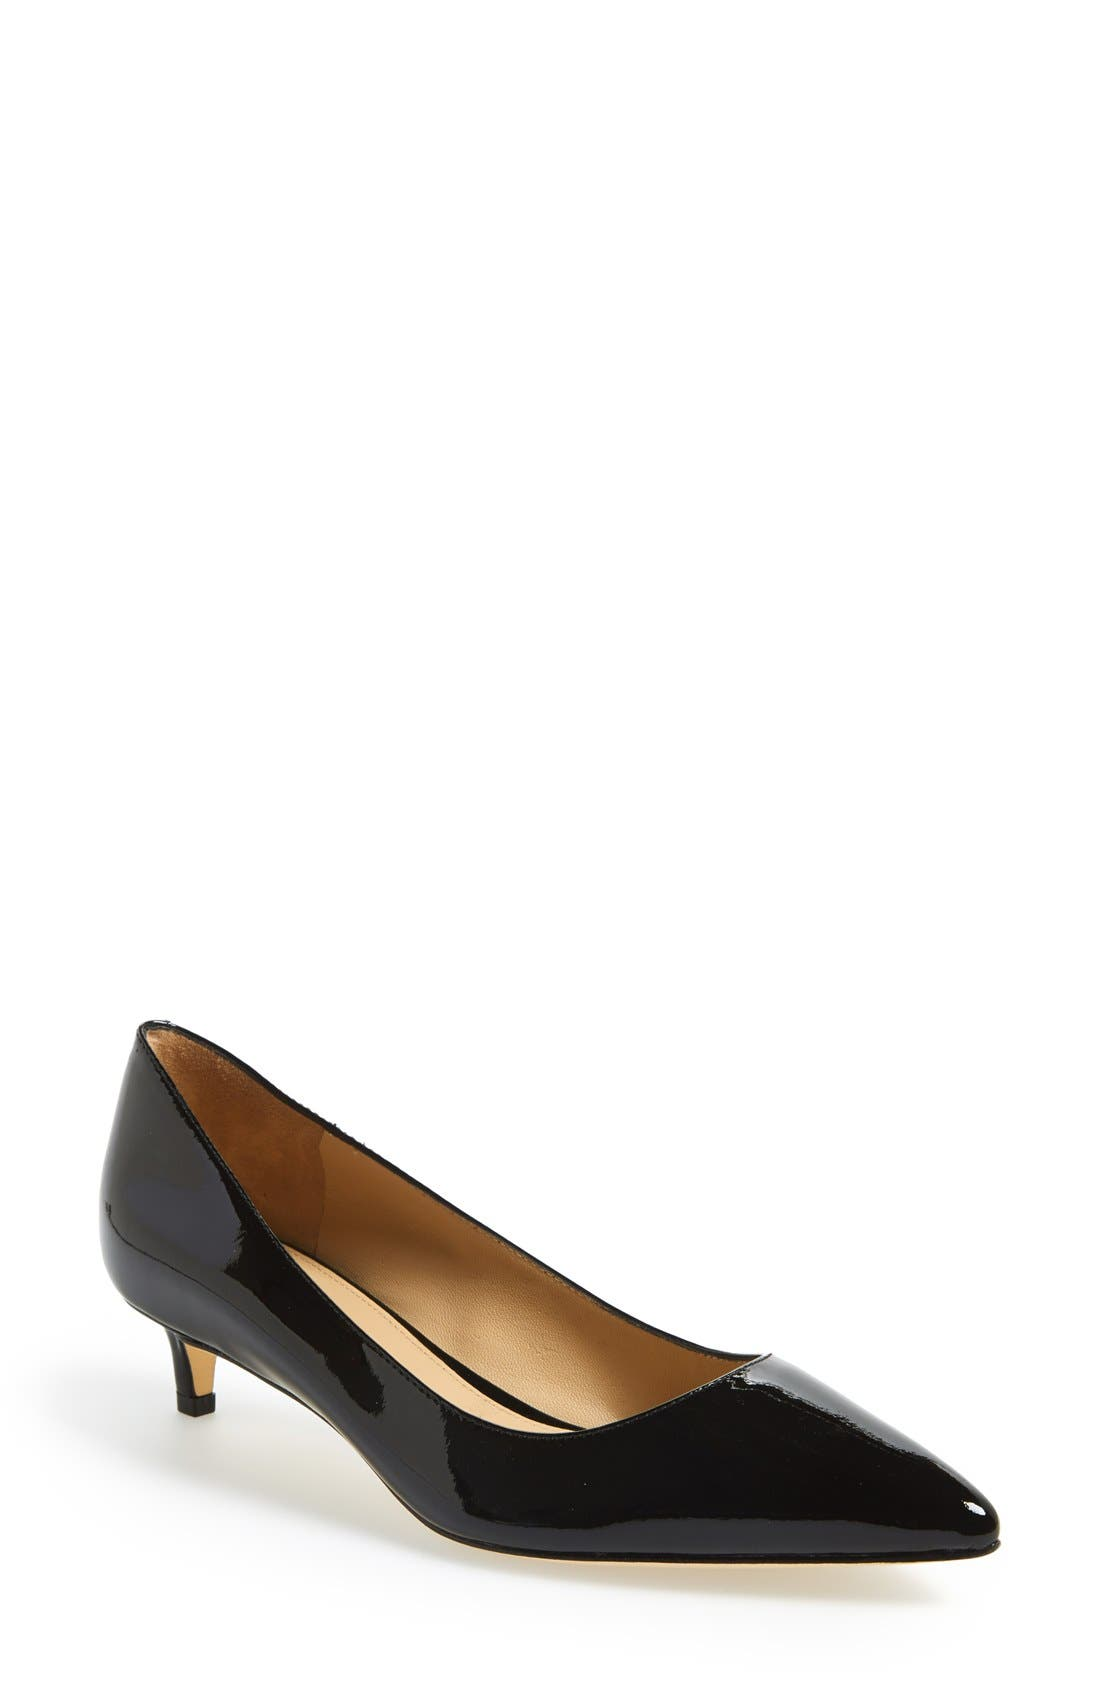 'Hue' Pointy Toe Pump,                             Main thumbnail 1, color,                             001